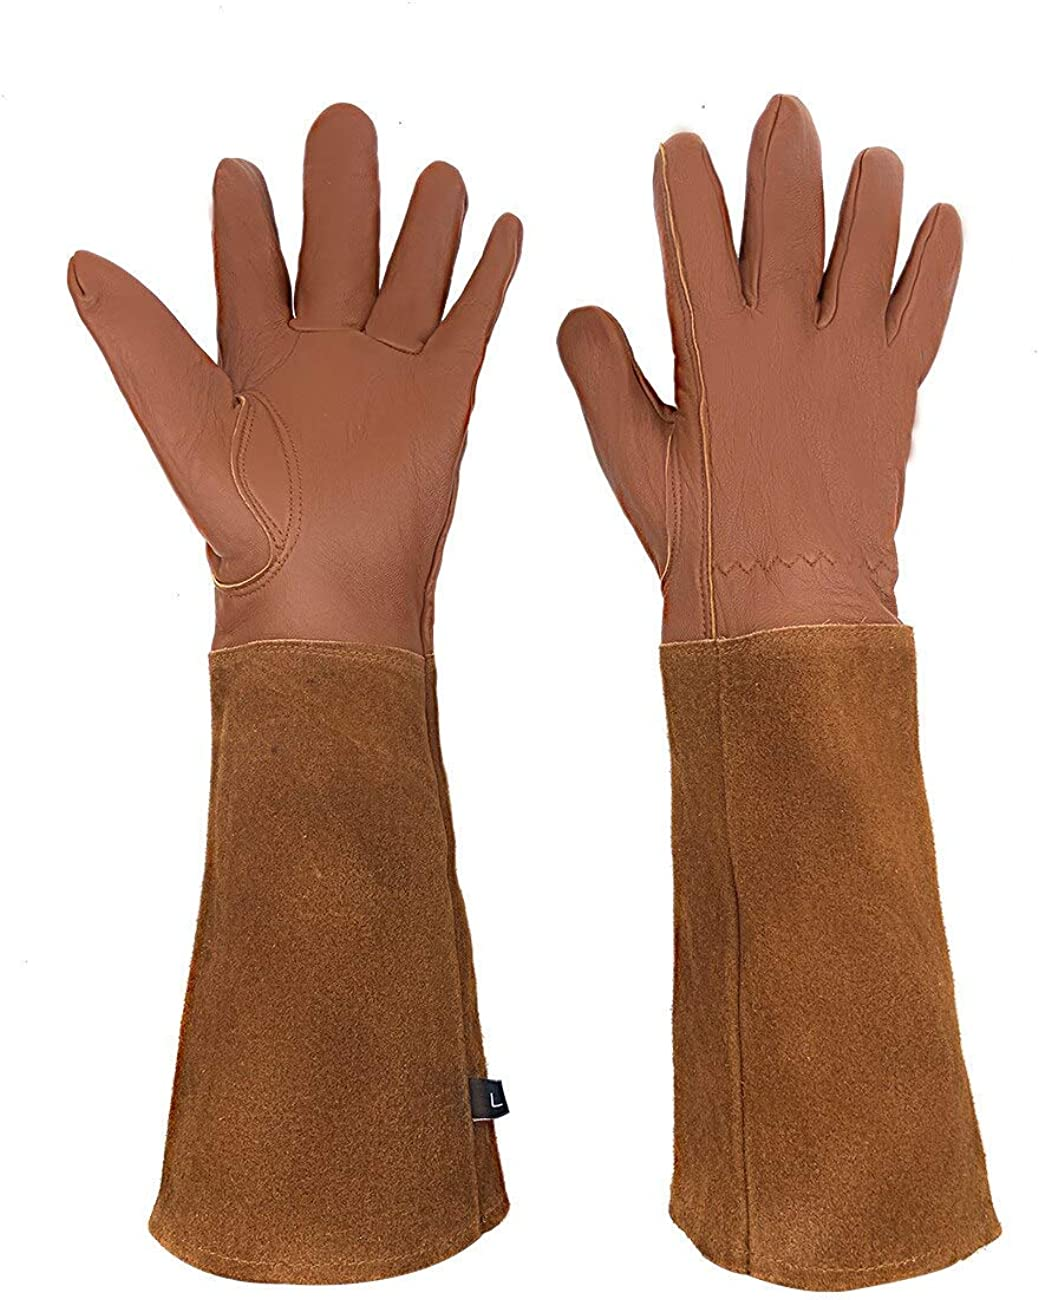 Garden Gloves for Women and Men Thorn Proof Cowhide Leather Work Gloves for Rose Bush Pruning